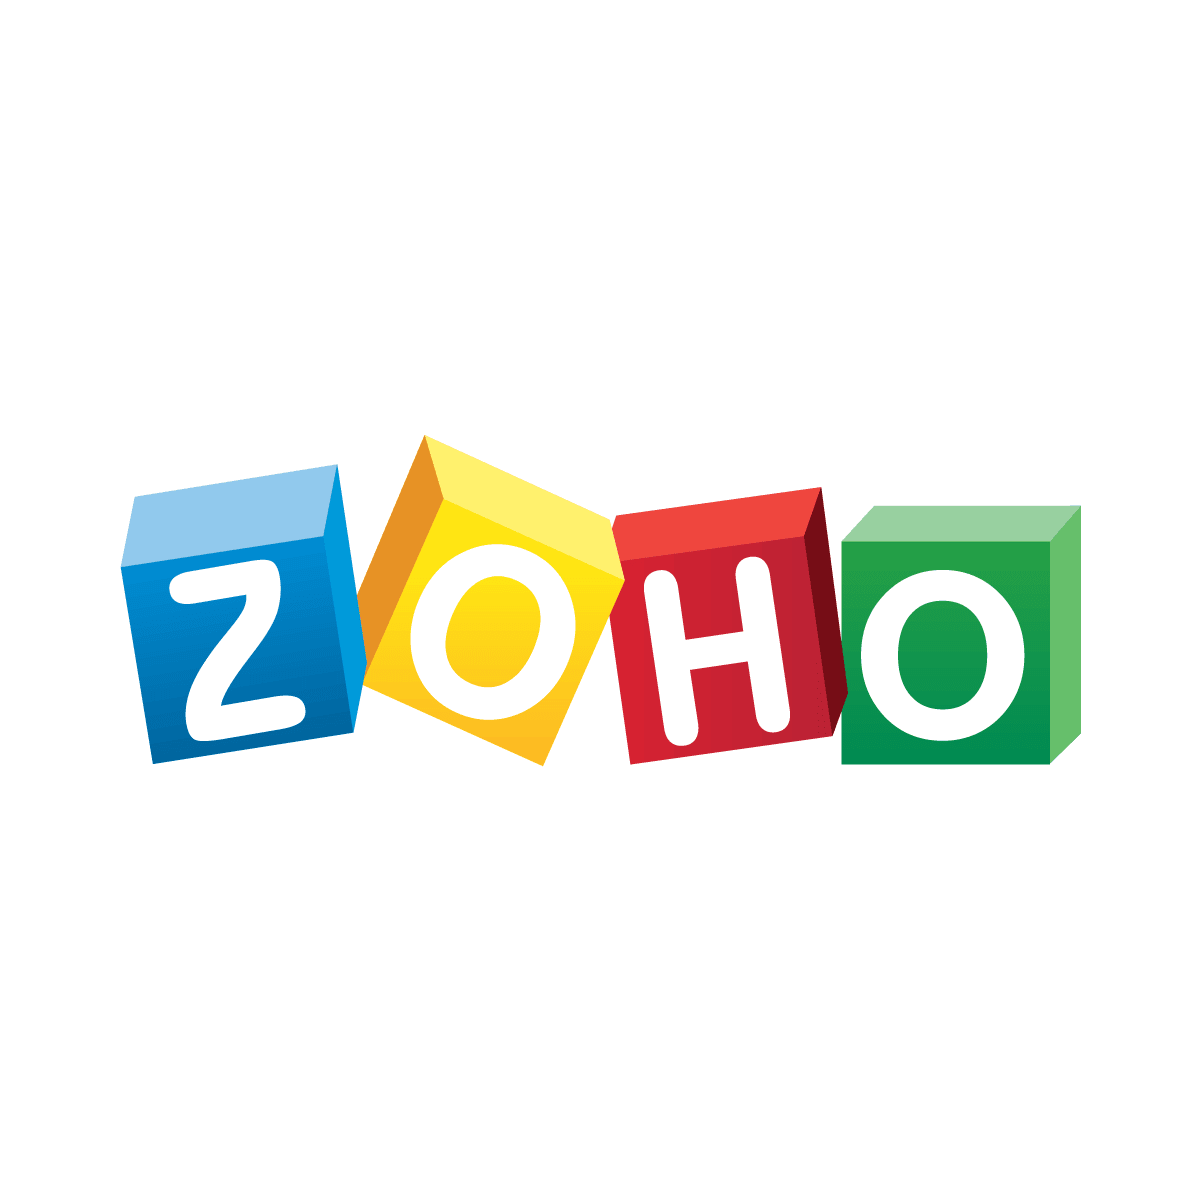 New Version of Zoho Sites Helps Users Build Beautiful, Modular Websites with Advanced Customization Options